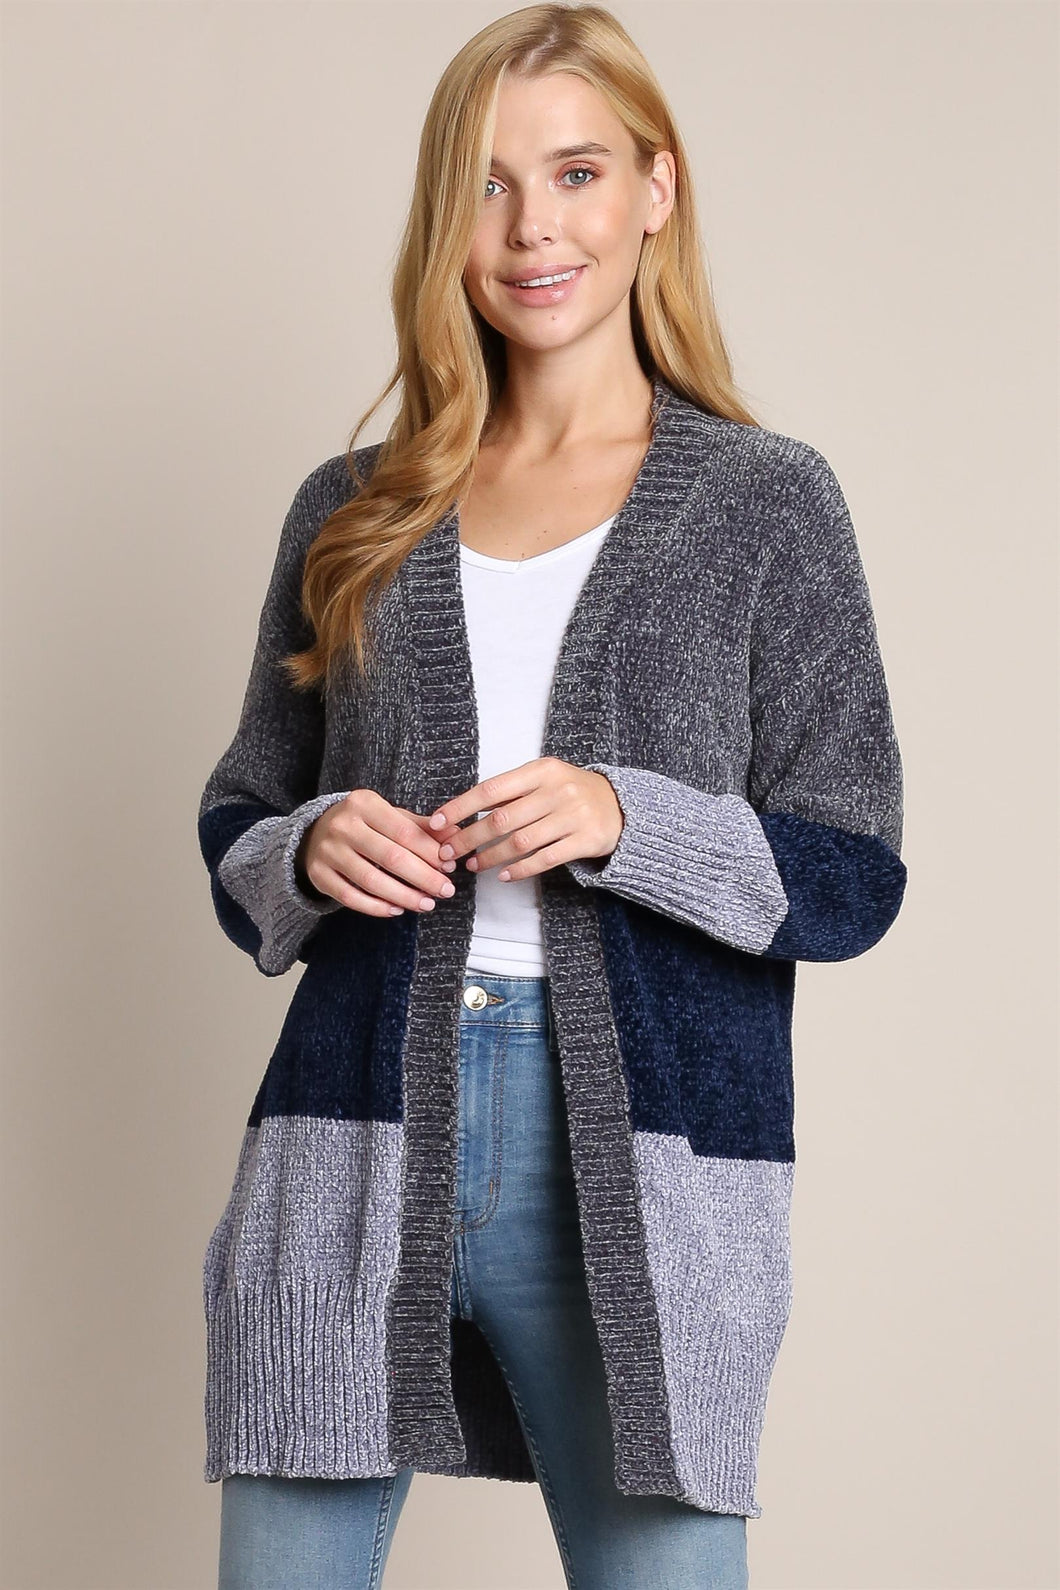 2189 - Chunky Knit Colorblock Cardigan